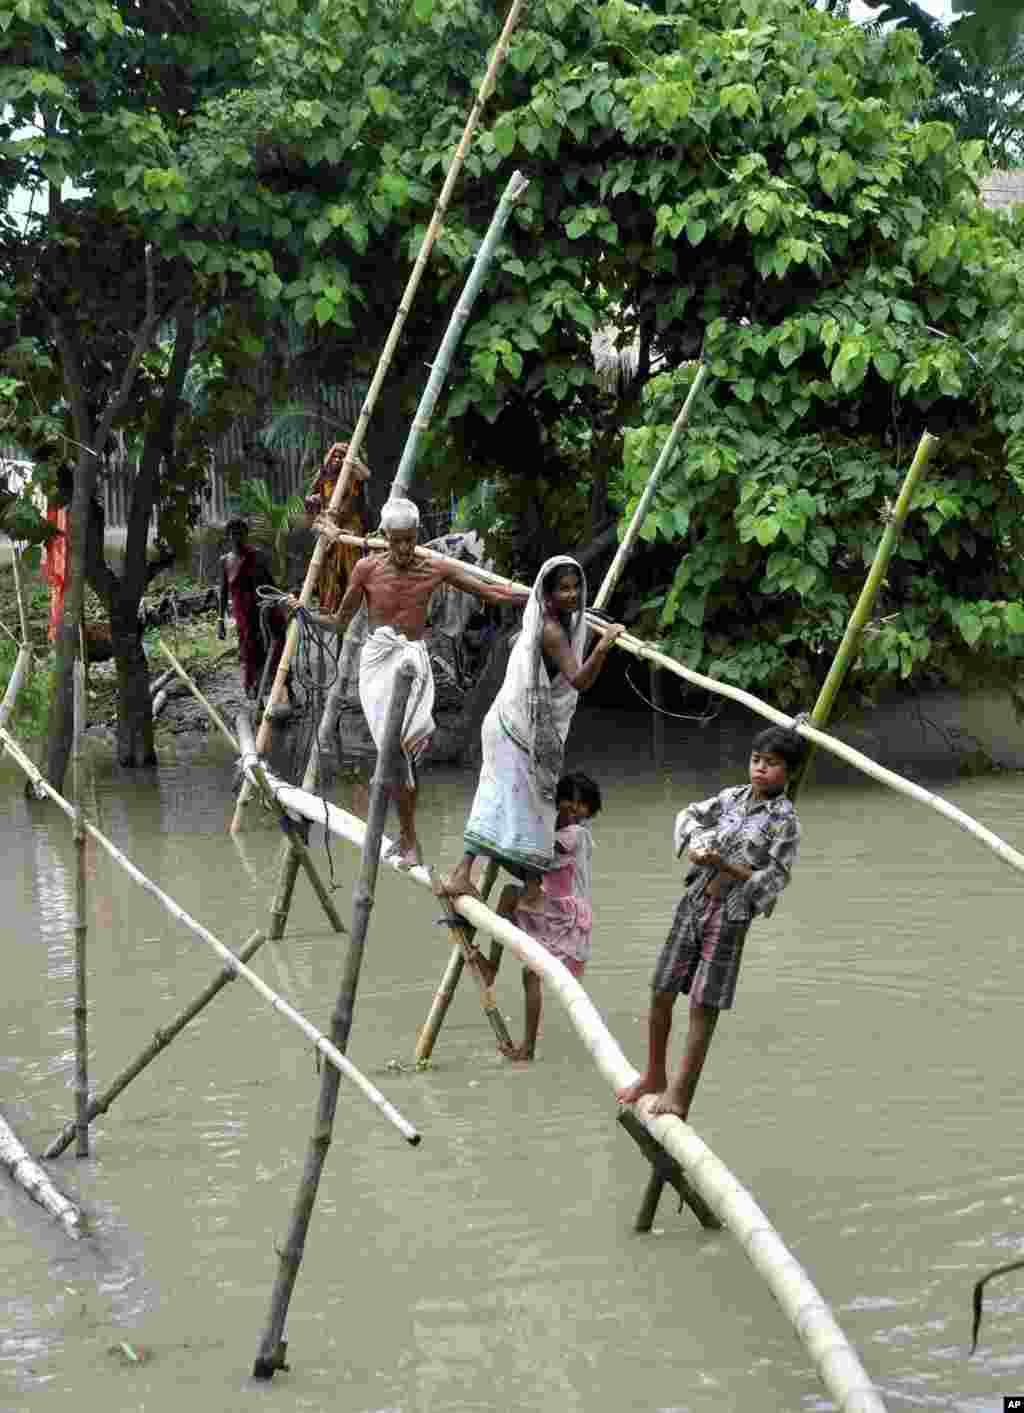 Indian villagers use a bamboo structure to move across a flooded village in the northeastern Assam state, India, Aug. 18, 2014.